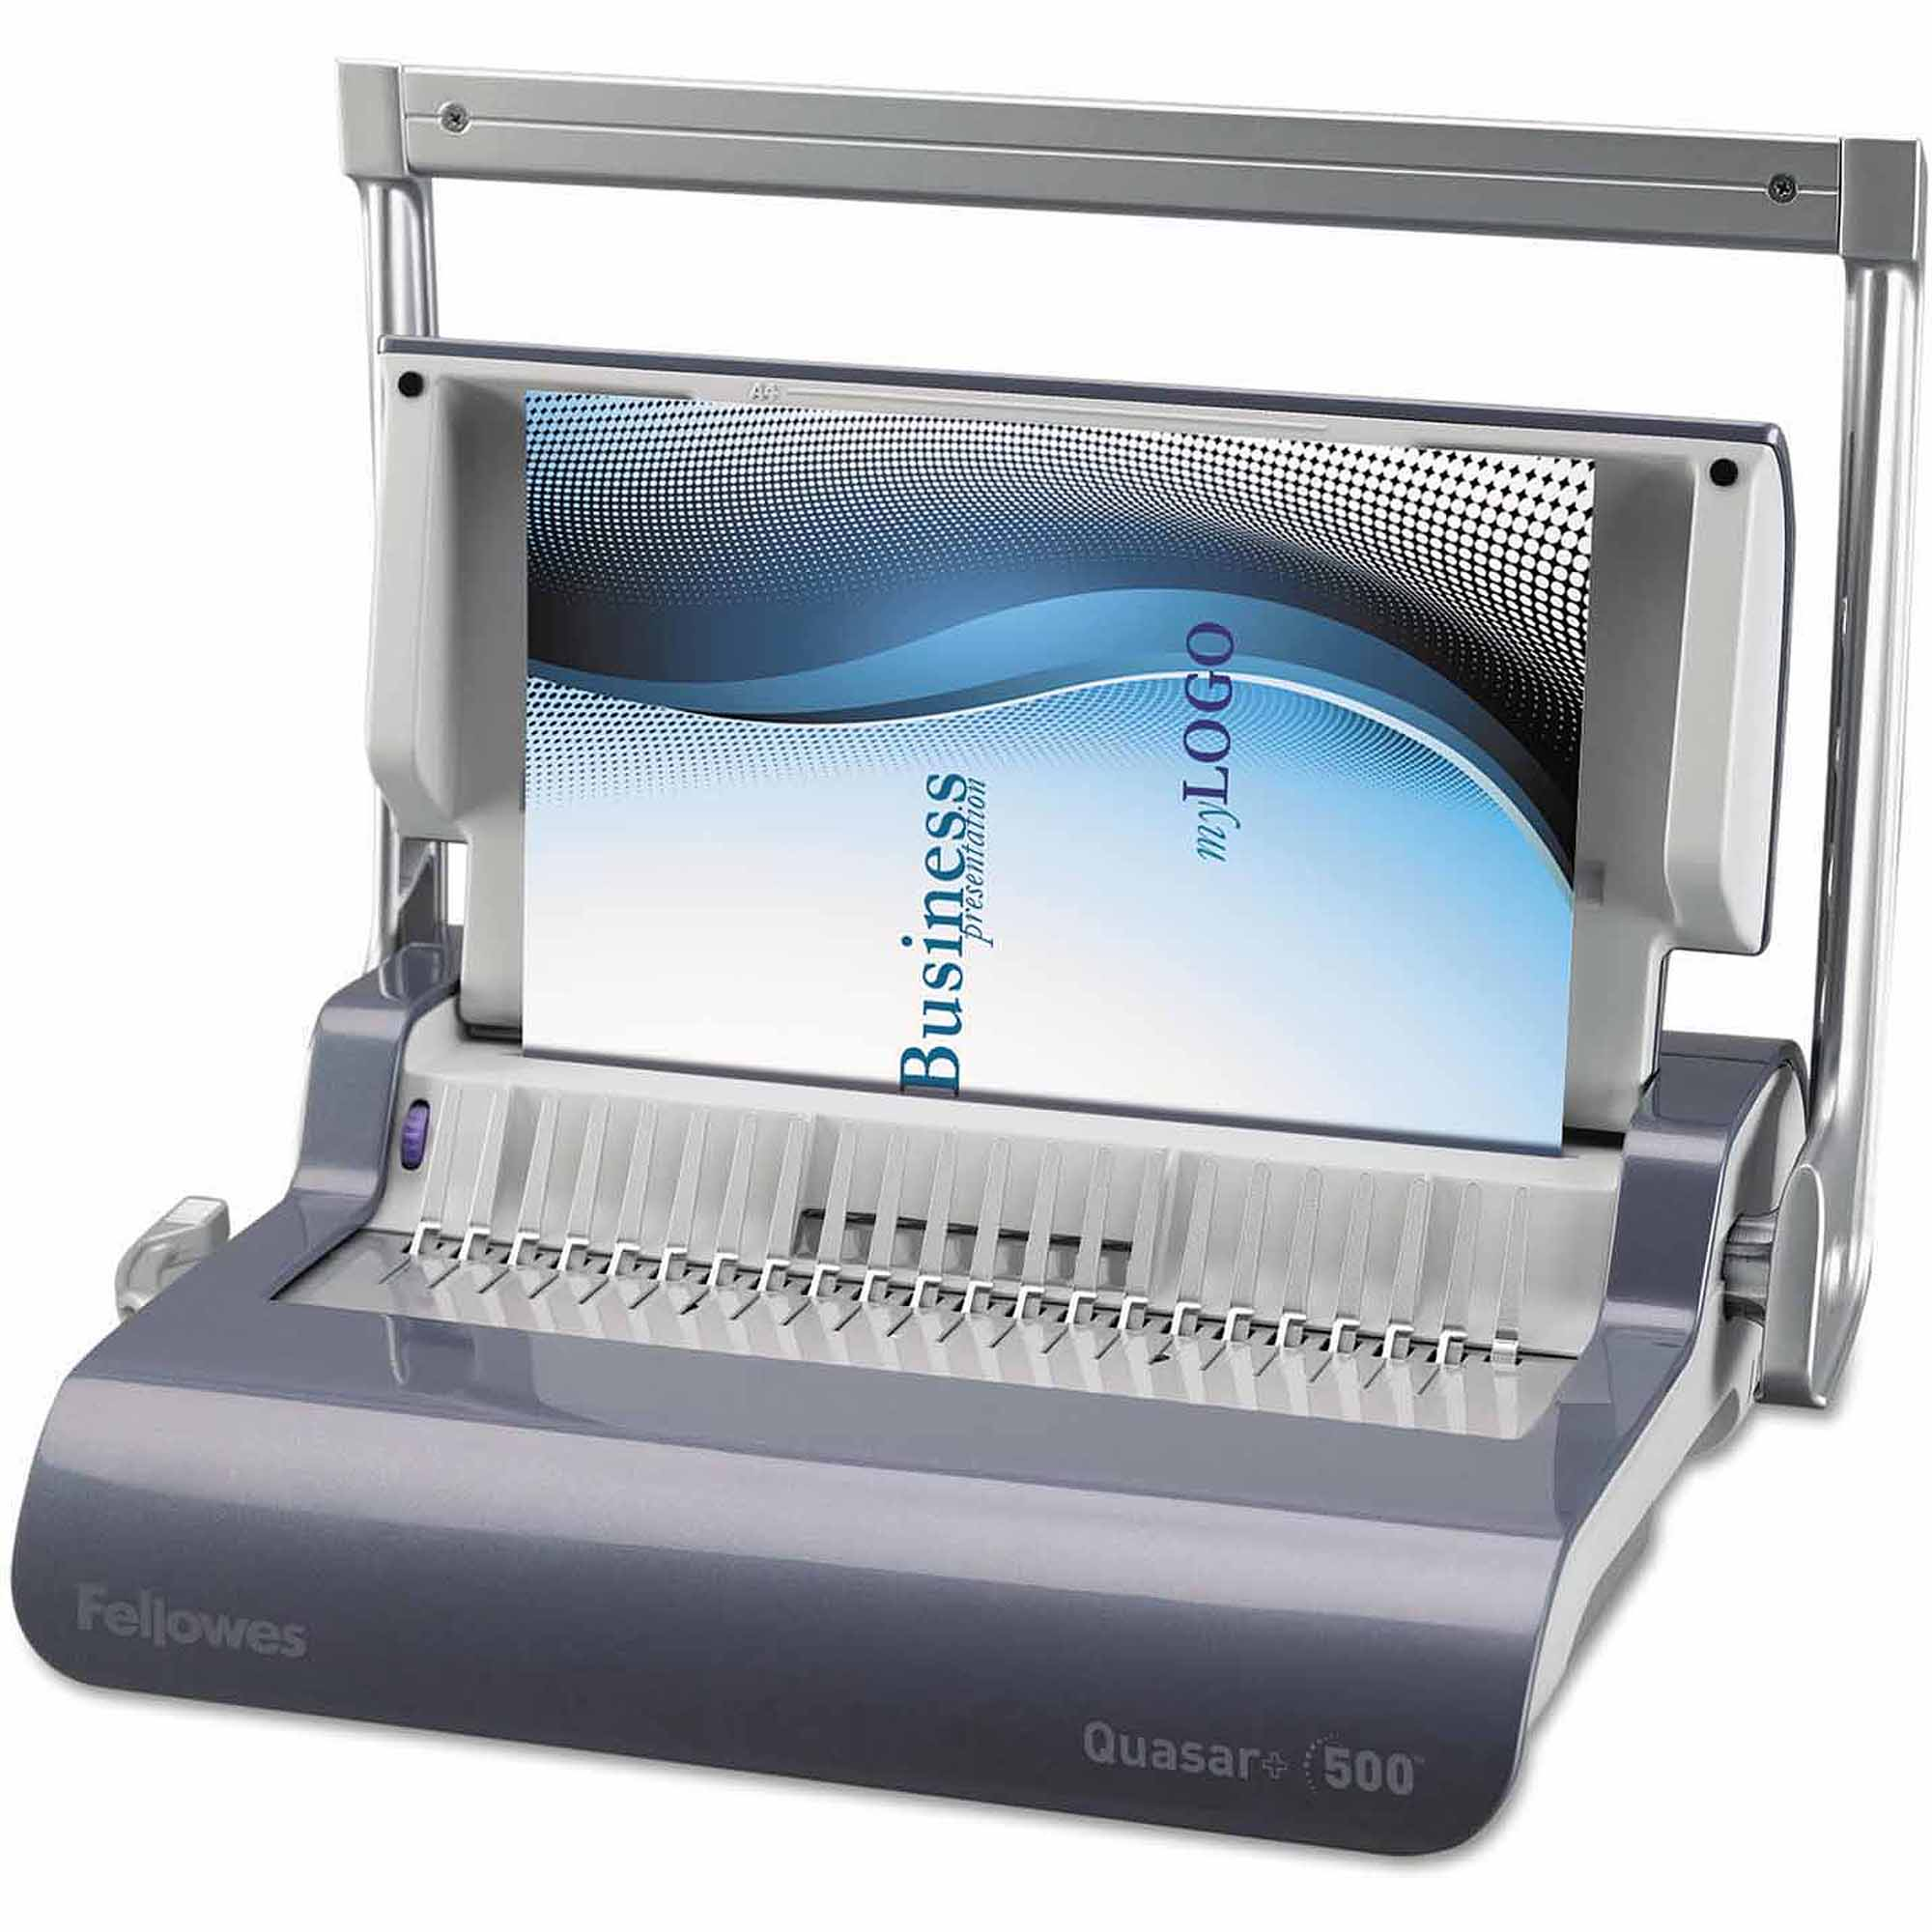 "Fellowes Quasar+ 500"" Manual Comb Binding Machine, 18-1/8"" x 15-3/8"" x 5-1/8"", Metallic Blue"